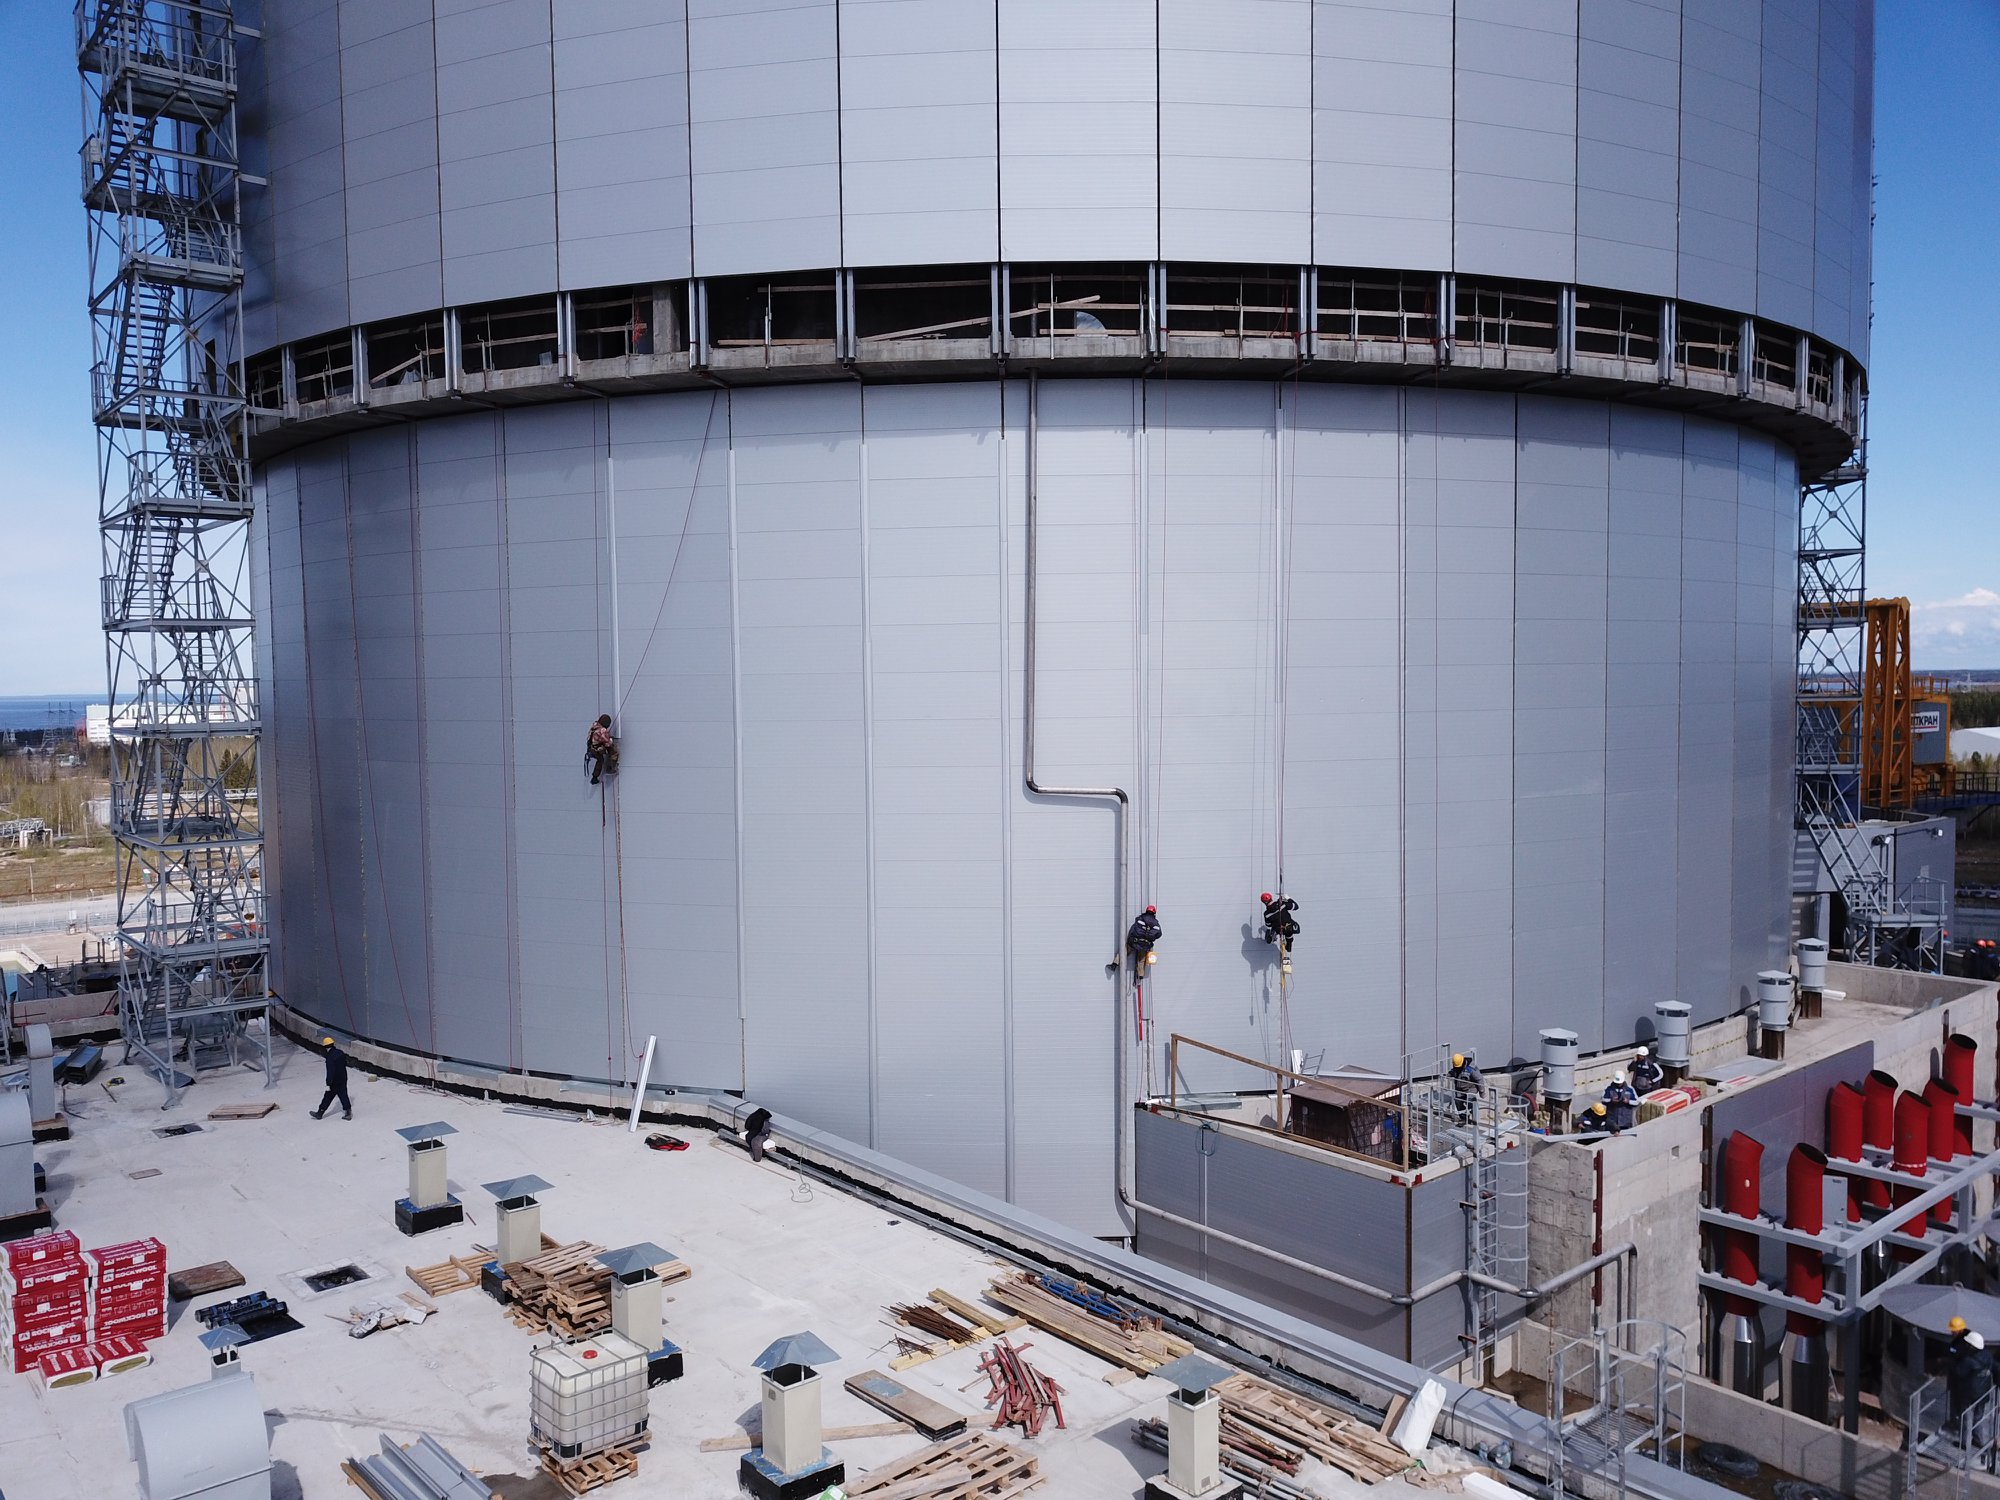 JSC CONCERN TITAN-2 SMU-2 EMPLOYEES ACCOMPLISH TO INSTALL THERMAL PANELS ON THE REACTOR BUILDING OF THE LENINGRAD NPP POWER UNIT UNDER CONSTRUCTION